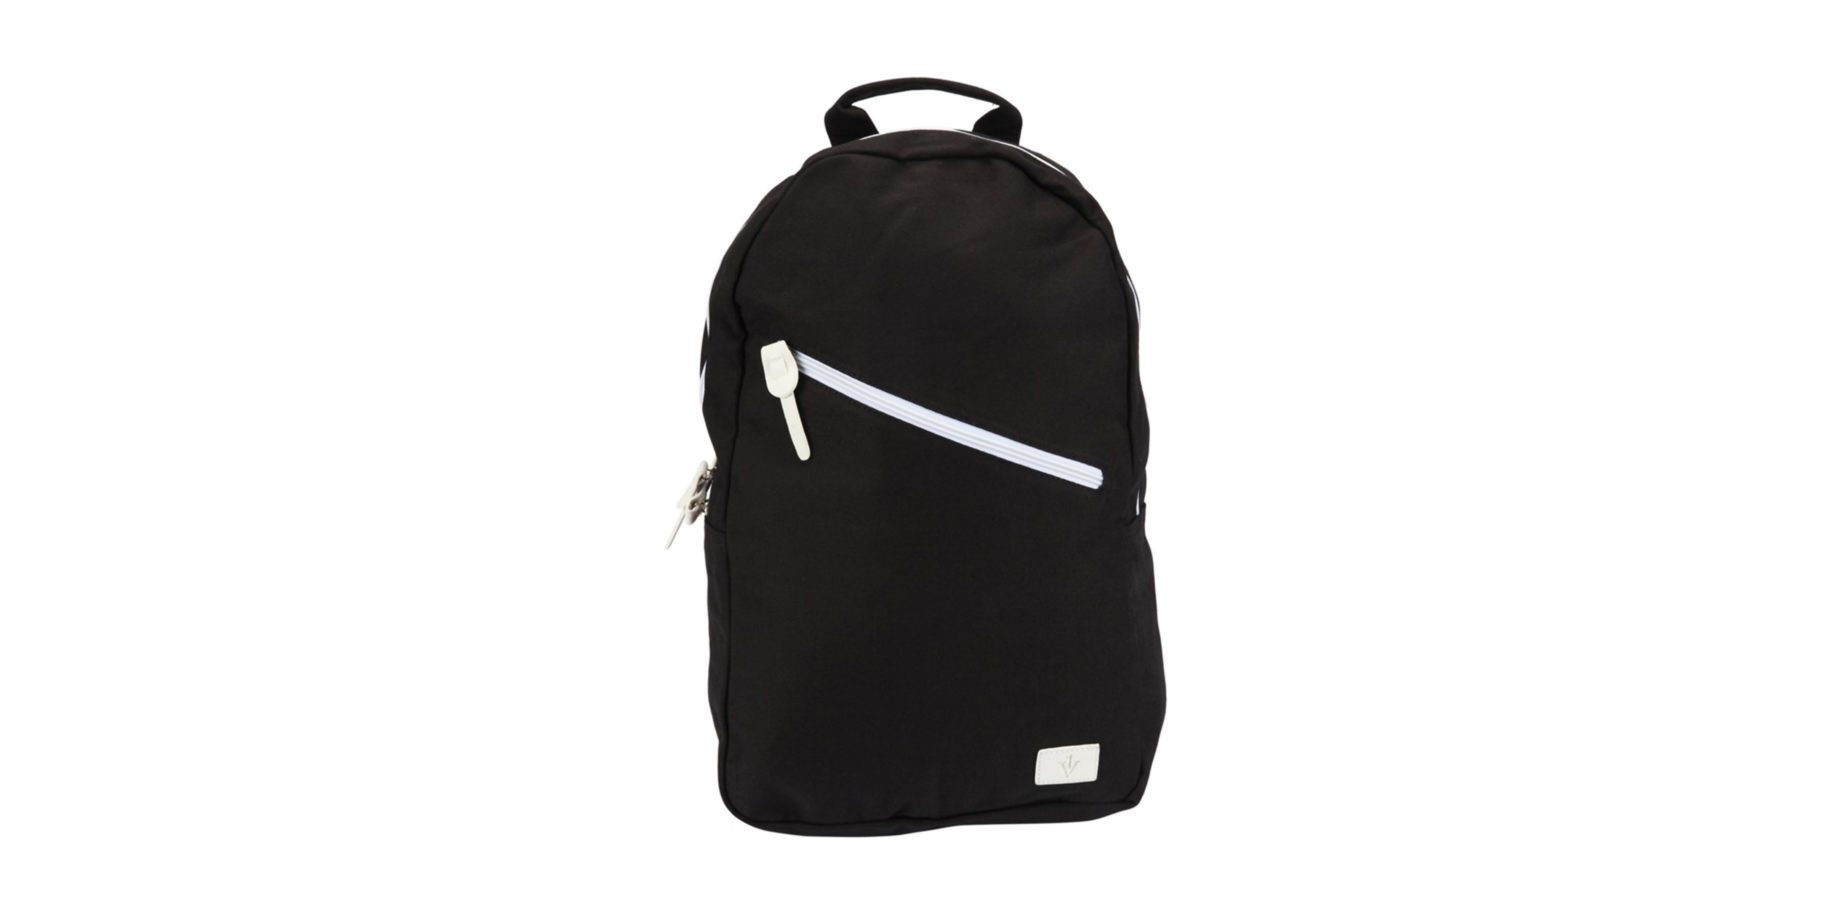 1 Voice Backpack  Image: 1 Voice